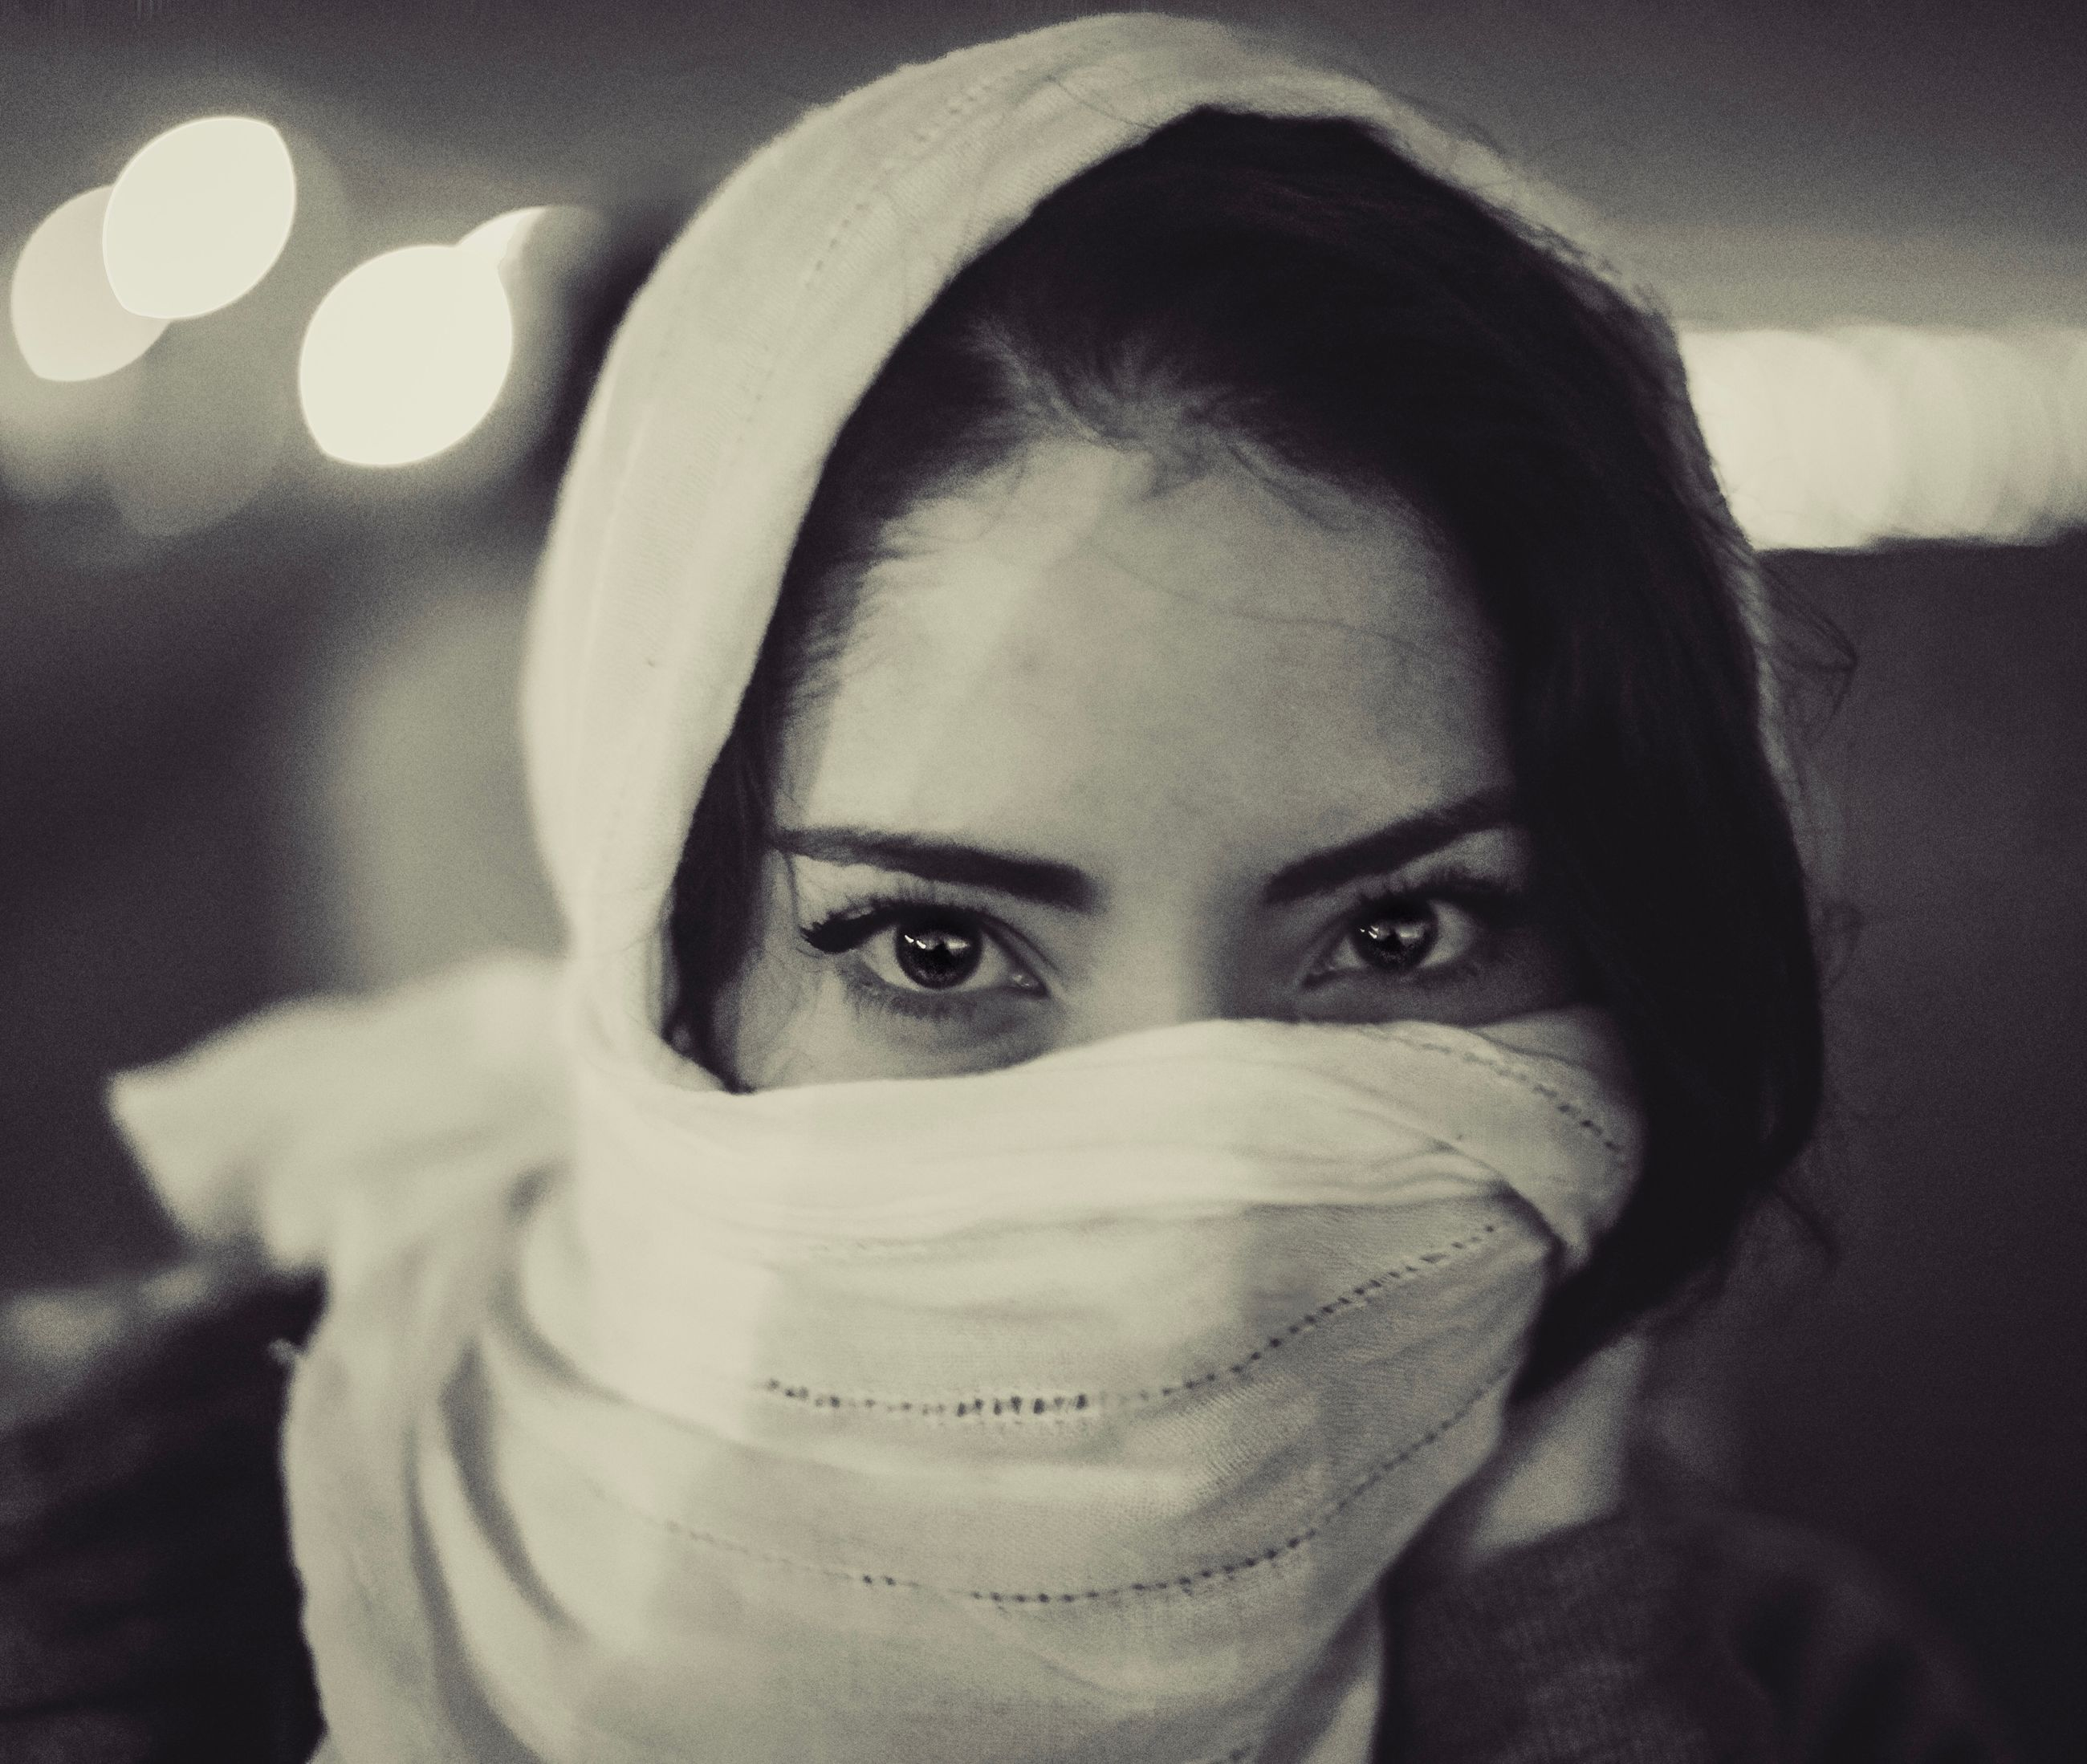 CLOSE-UP PORTRAIT OF A YOUNG WOMAN COVERING FACE WITH HAIR